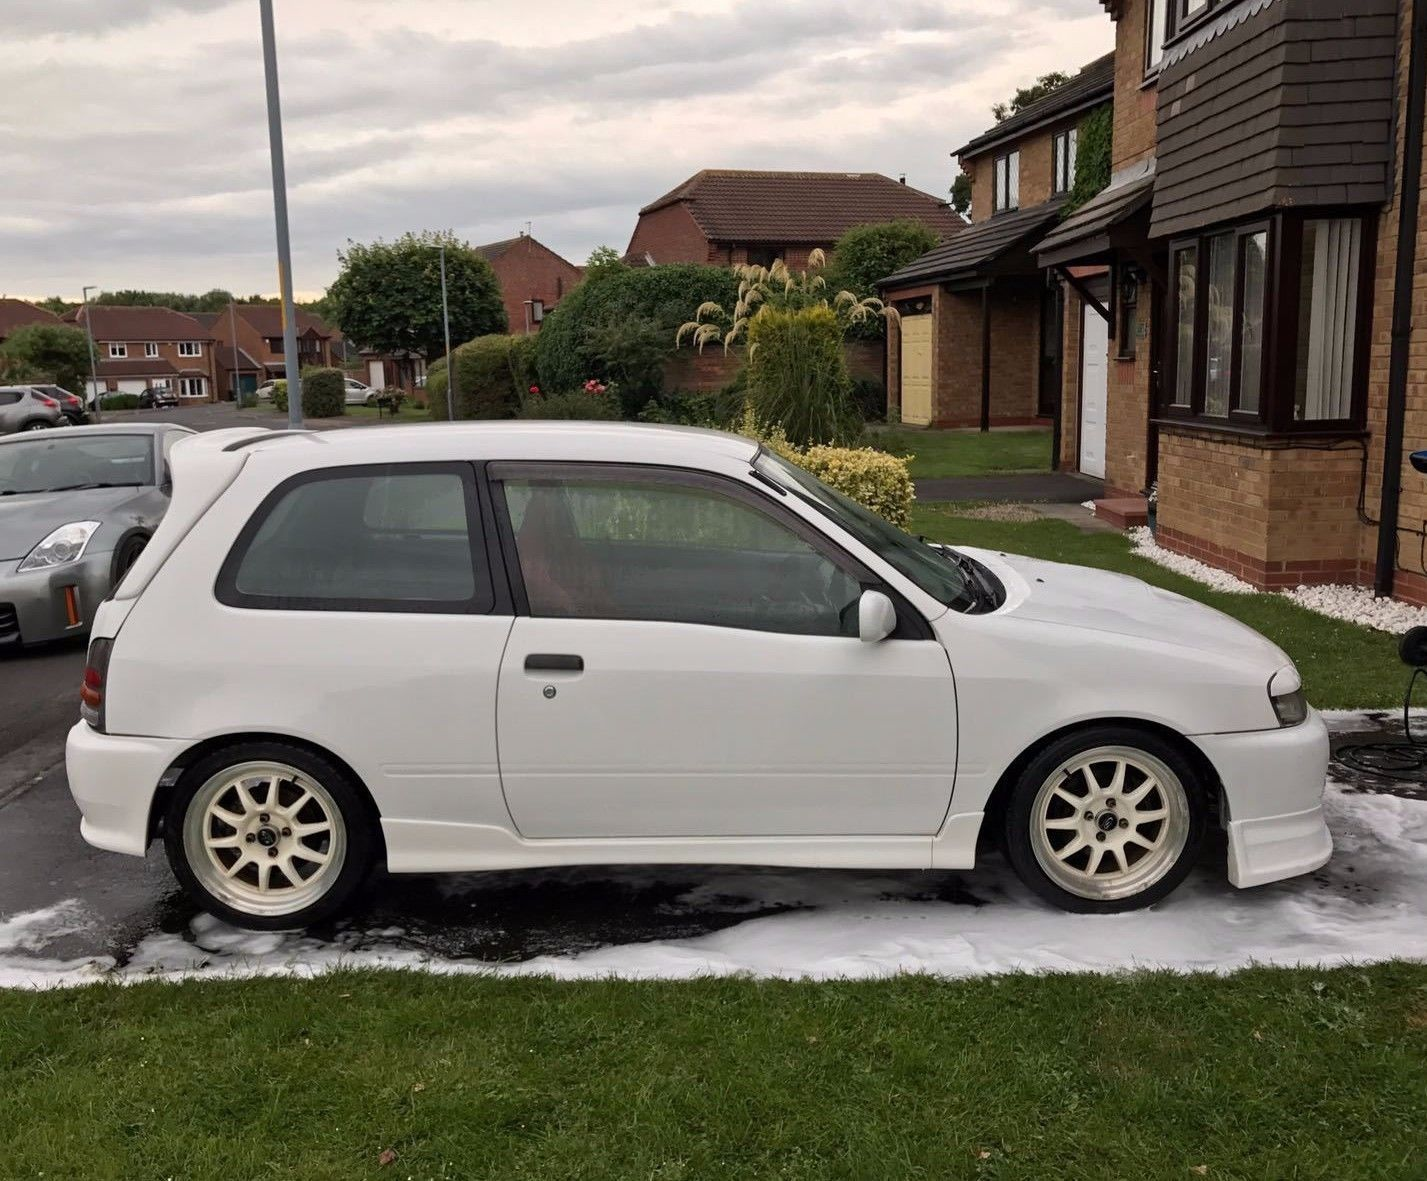 Looking For A Ep91 Toyota Starlet Glanza V Spec Turbo Jdm Modified Includes Reg R666 Emy This One Is On Ebay Toyota Starlet Toyota Turbo Car